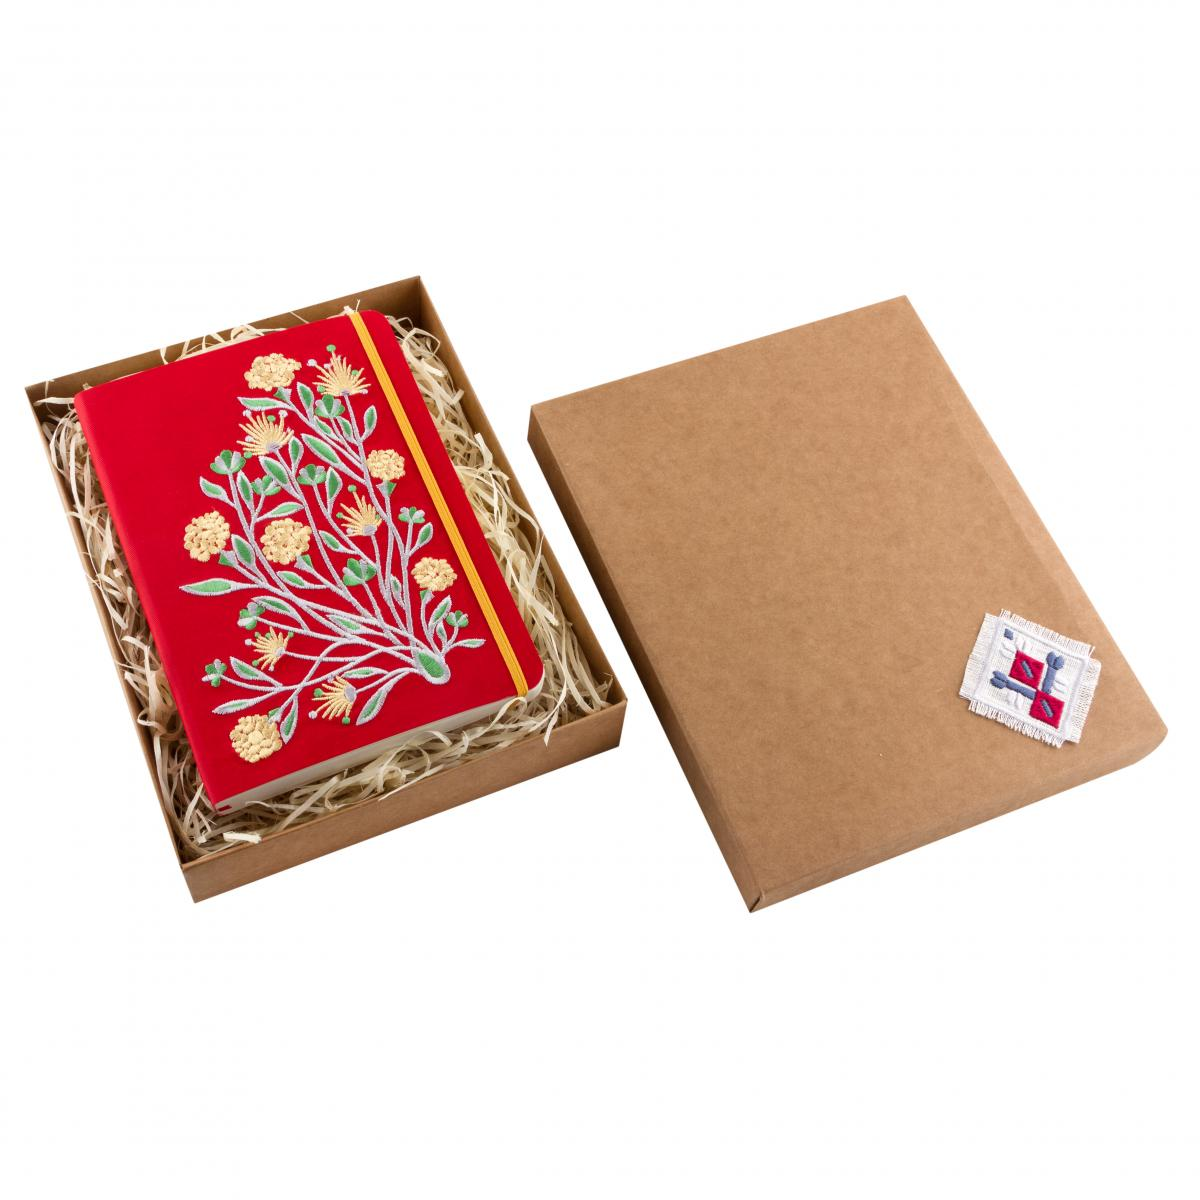 Eco-leather notebook with embroidery Elven flower, red. Photo №3. | Narodnyi dim Ukraine